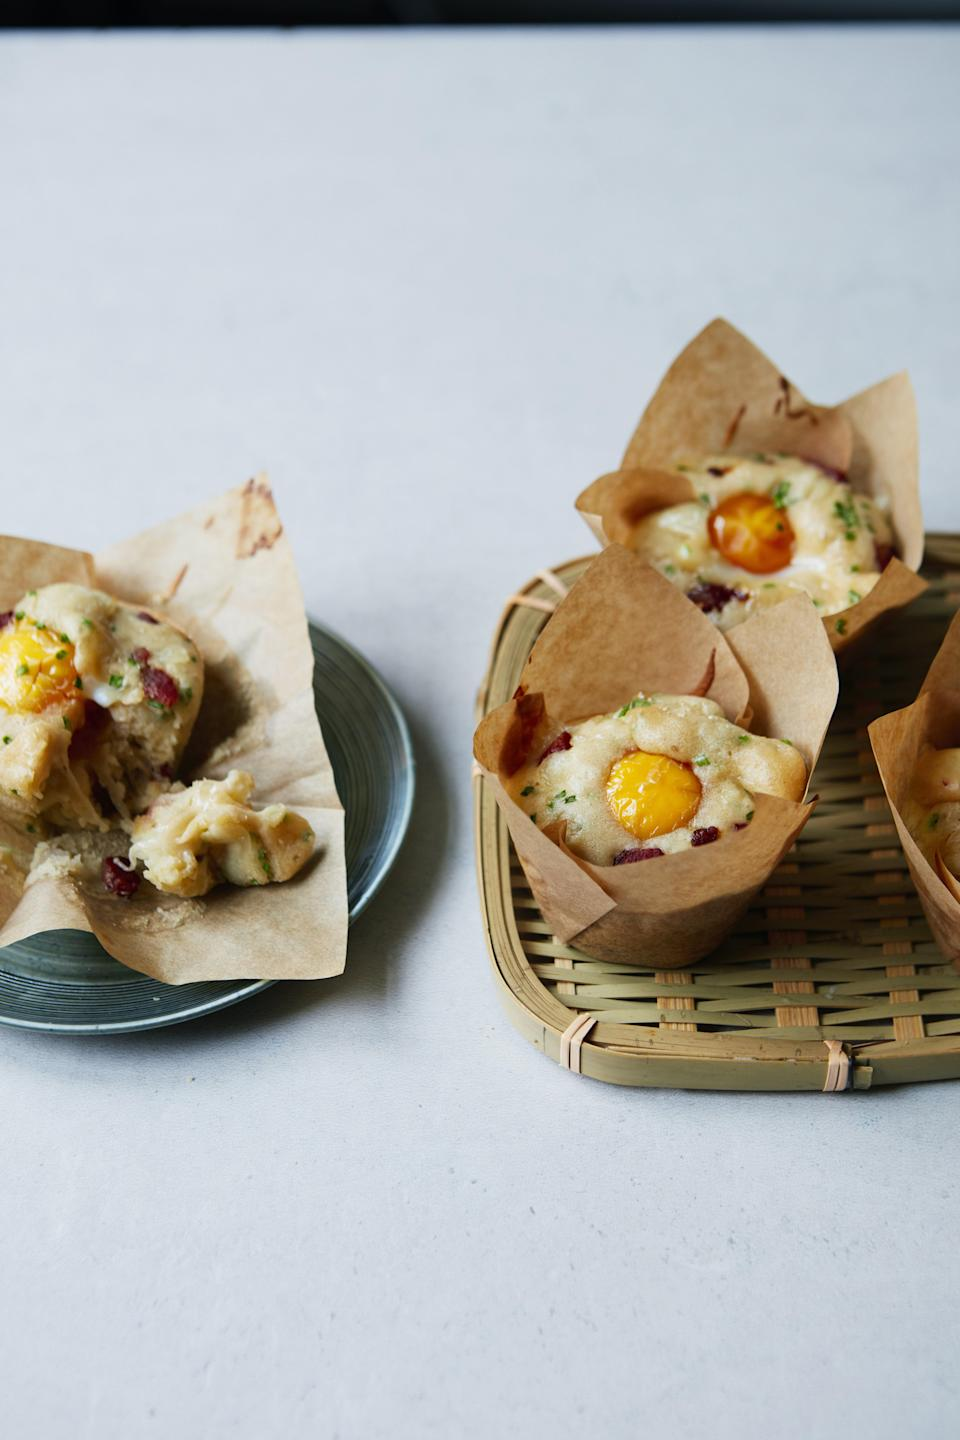 """This pancake-like muffin is studded with bacon and tomatoes and topped with a bright, yellow egg yolk. <a href=""""https://www.epicurious.com/recipes/food/views/korean-egg-bread-gyeran-bbang?mbid=synd_yahoo_rss"""" rel=""""nofollow noopener"""" target=""""_blank"""" data-ylk=""""slk:See recipe."""" class=""""link rapid-noclick-resp"""">See recipe.</a>"""